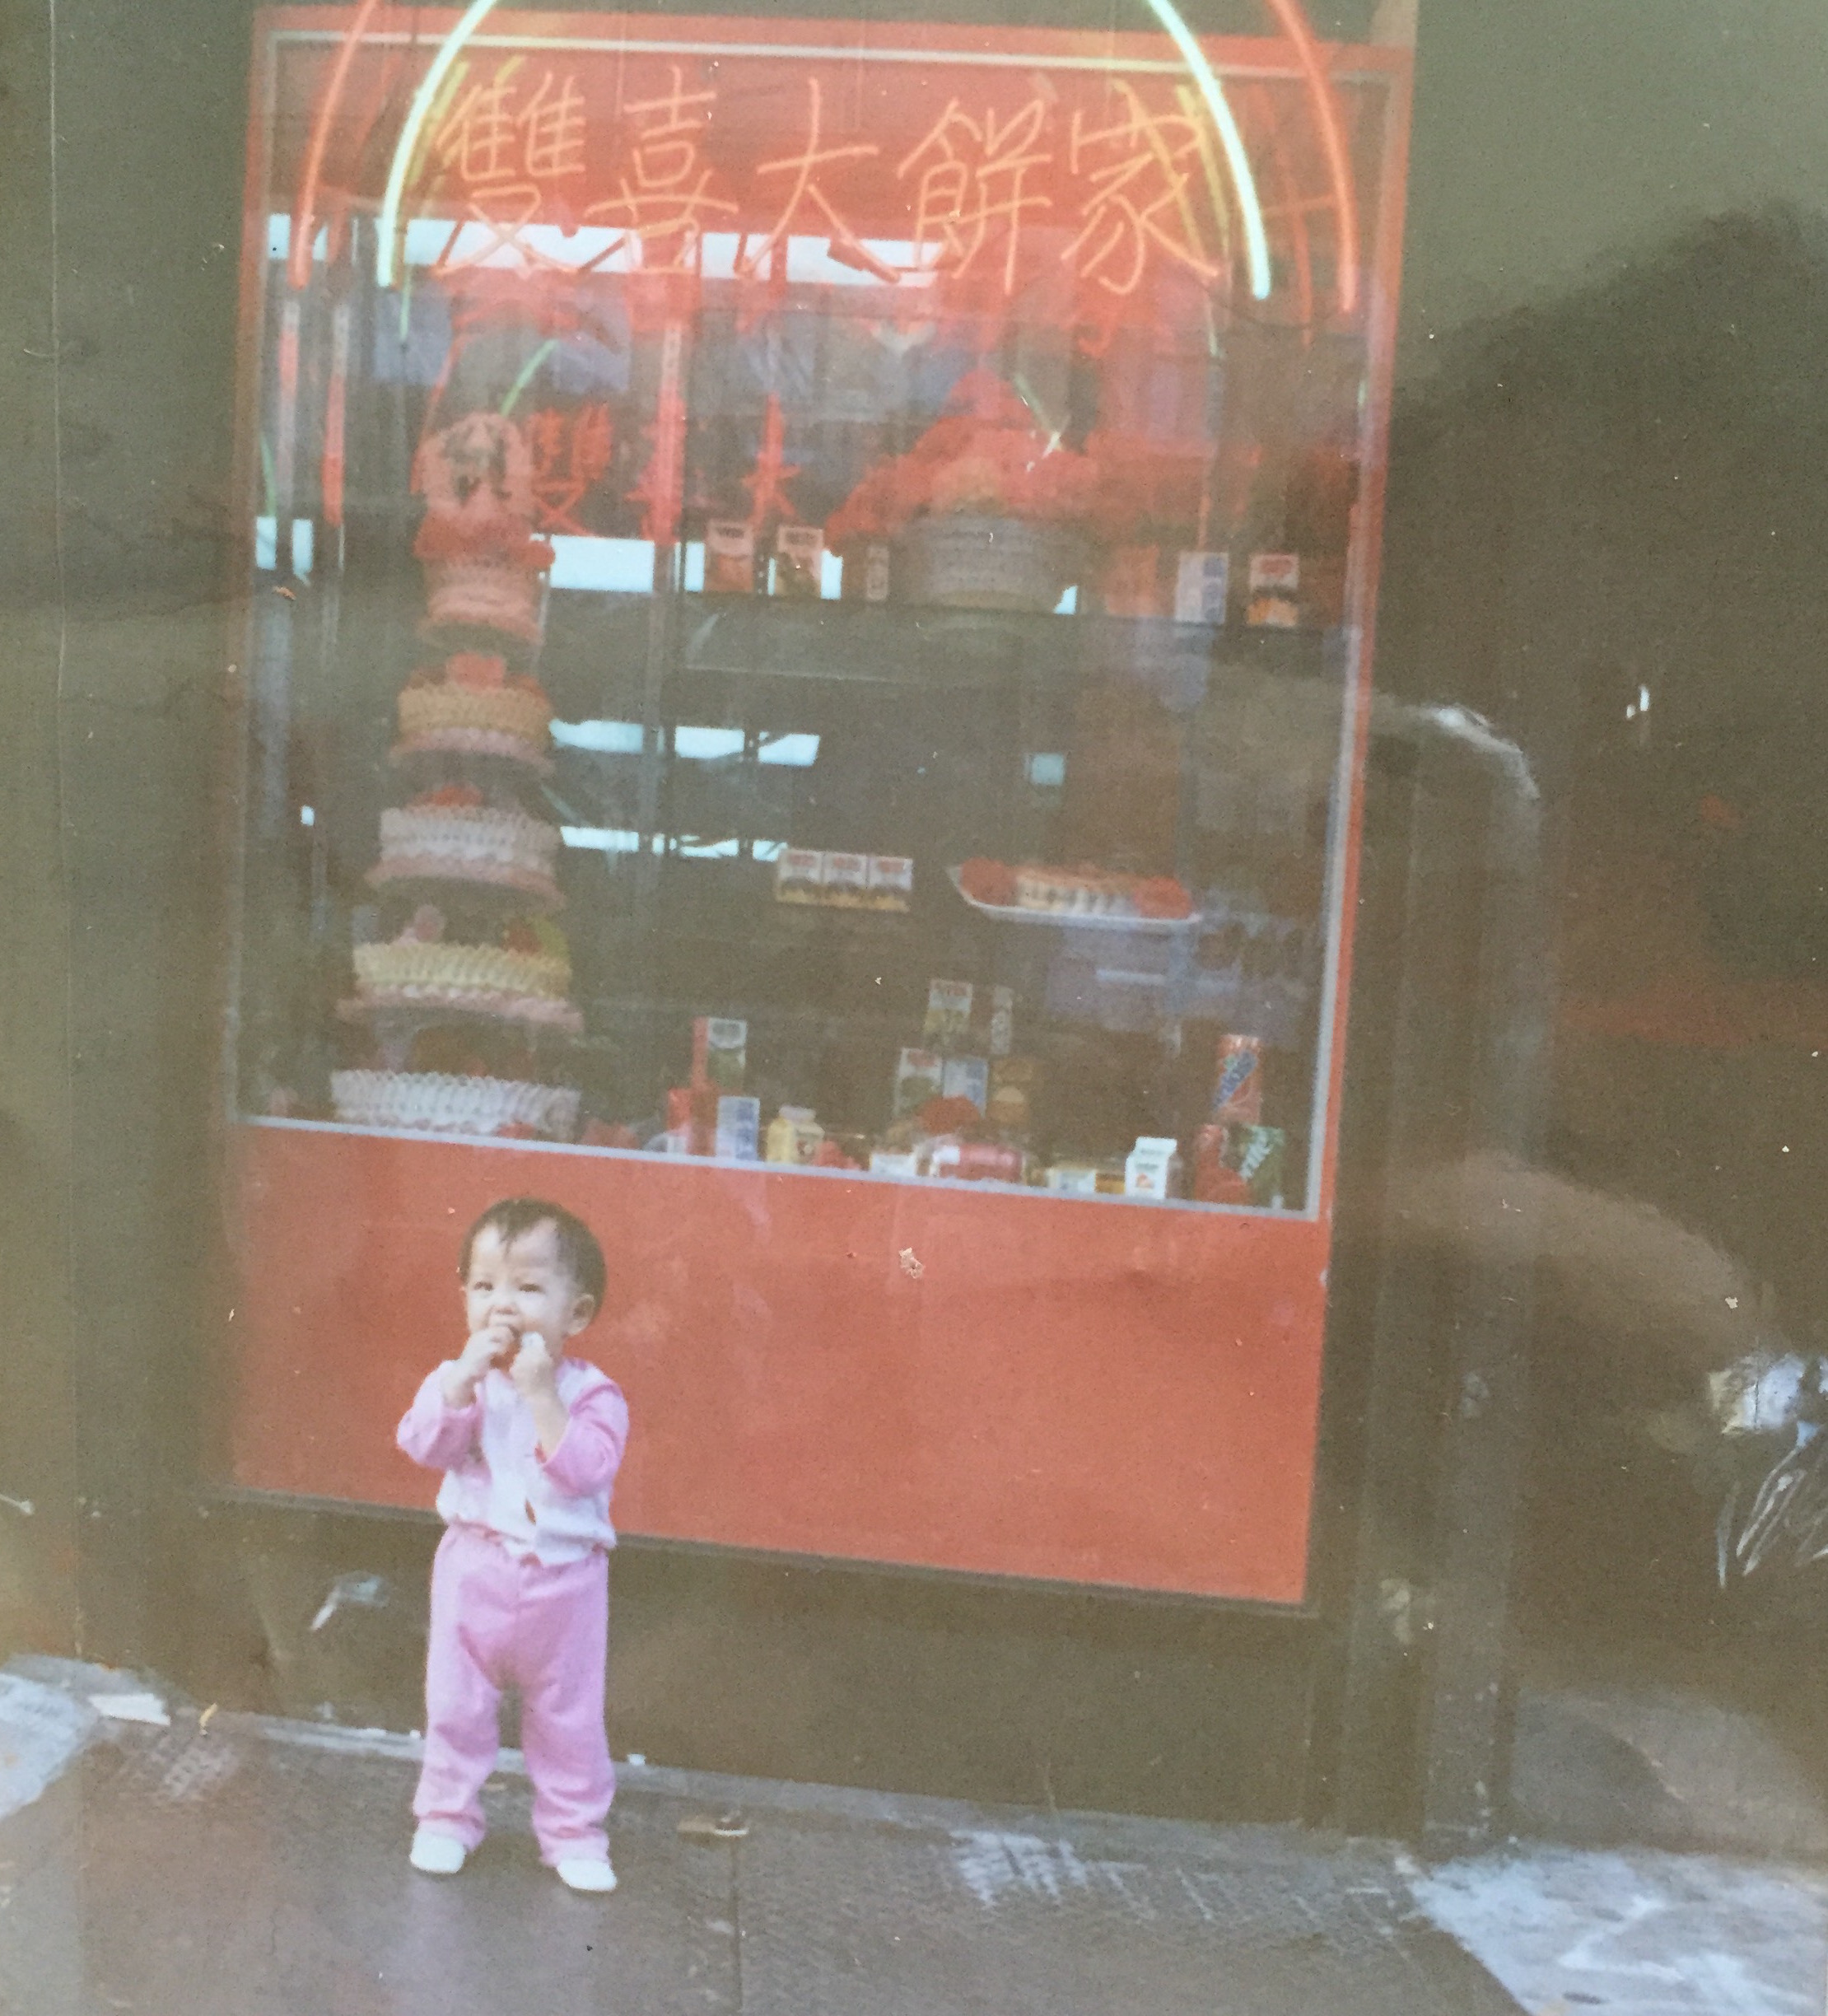 In front of Lucky King Bakery - 280 Grand Street, New York, NY 10002 - Chinatown, NY 1991